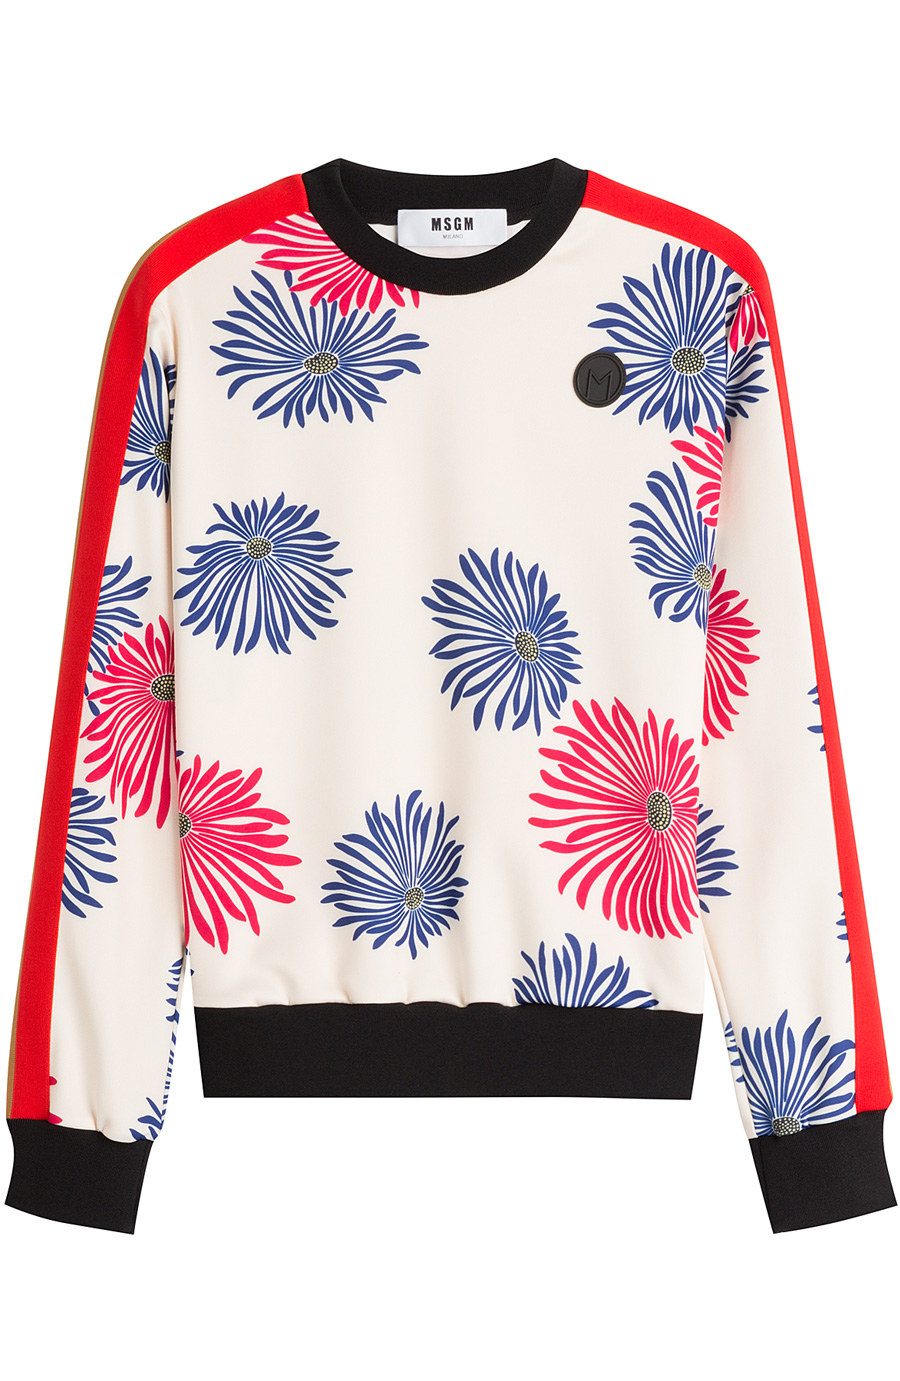 Msgm Printed Top In Florals